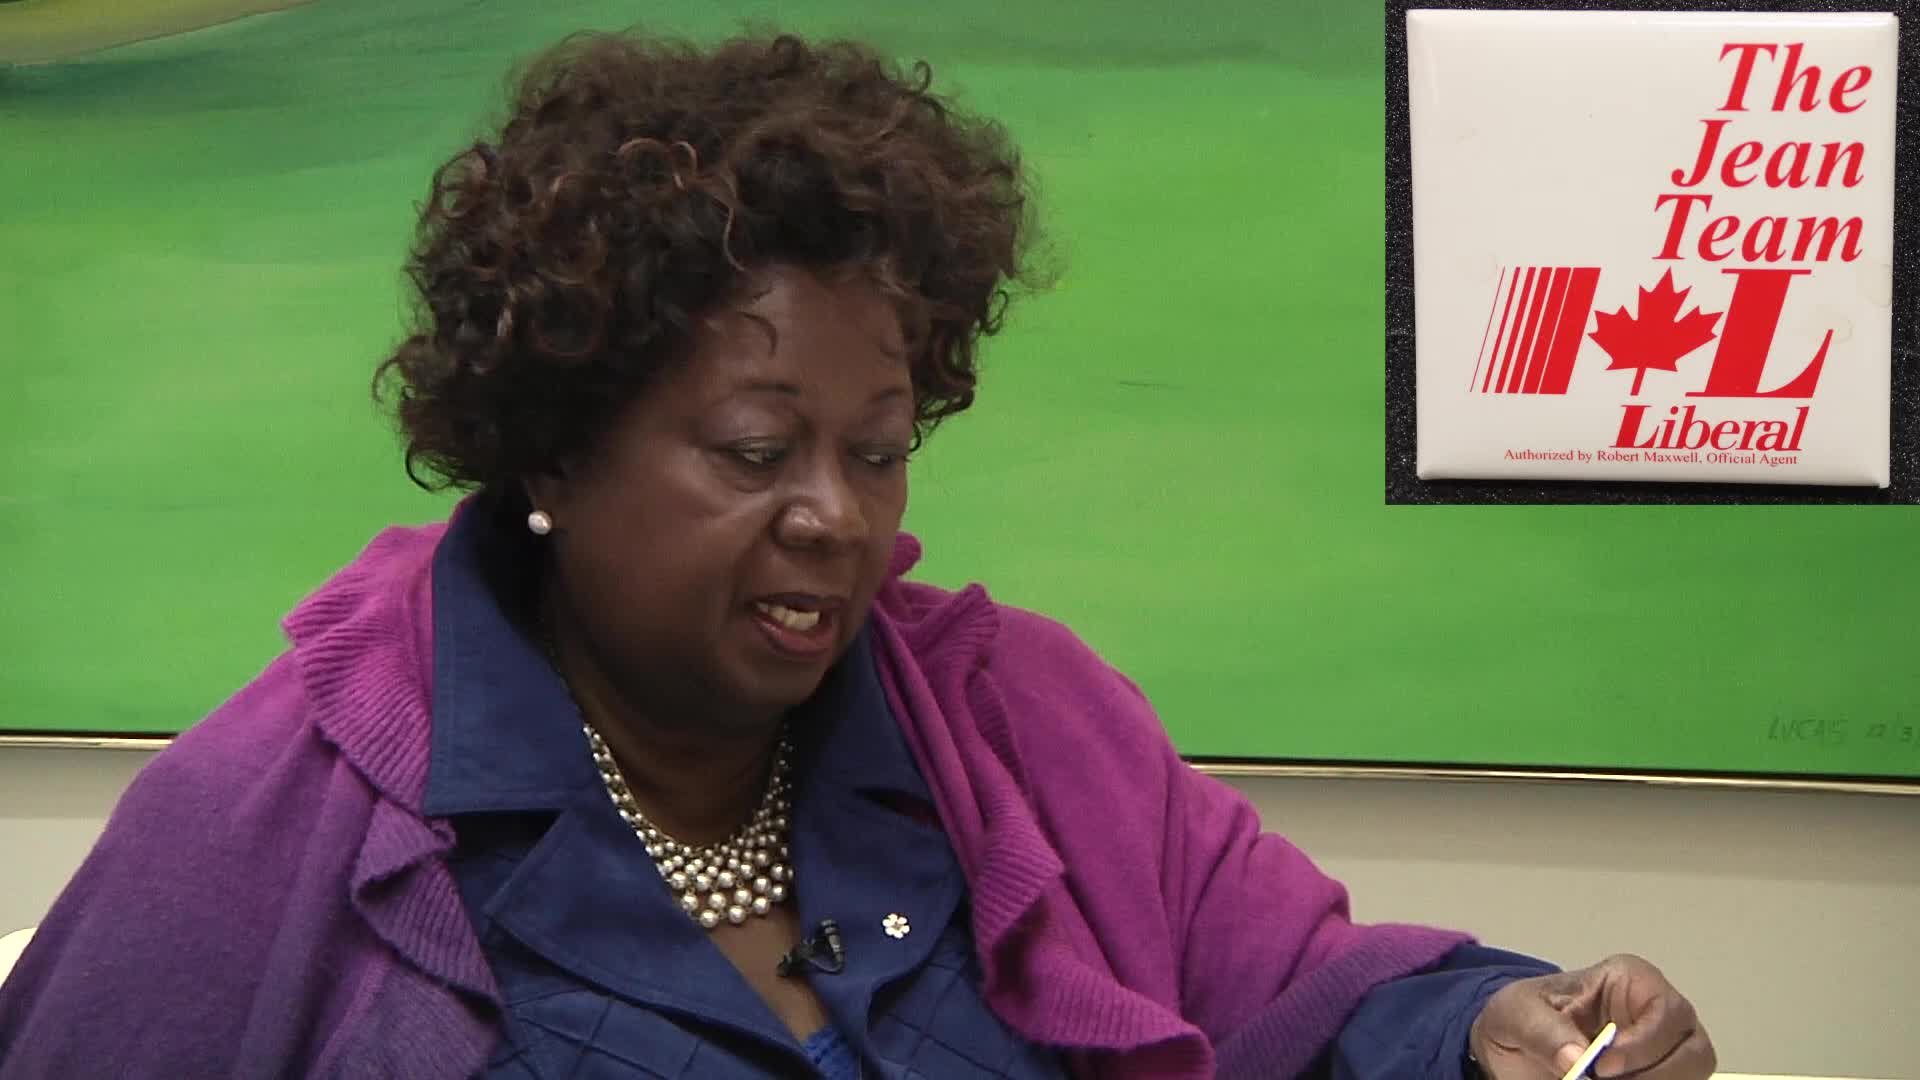 Jean Augustine interview: The Jean Team button